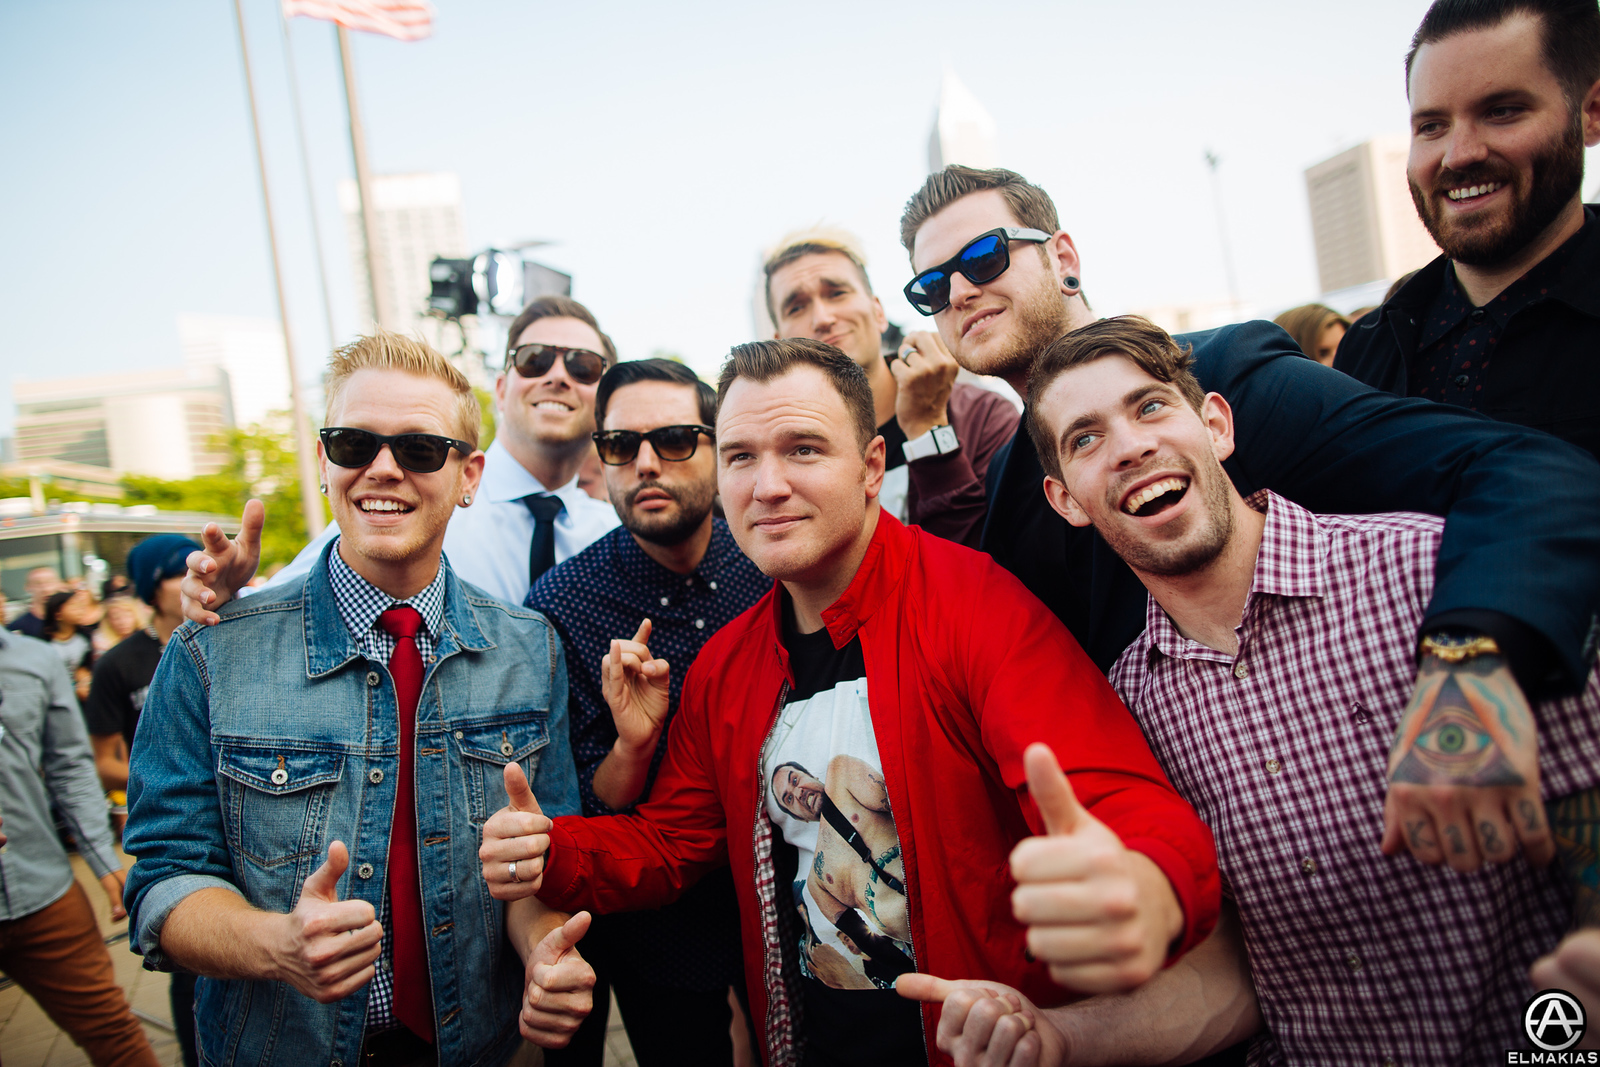 New Found Glory and A Day To Remember posting for a photo with another photographer